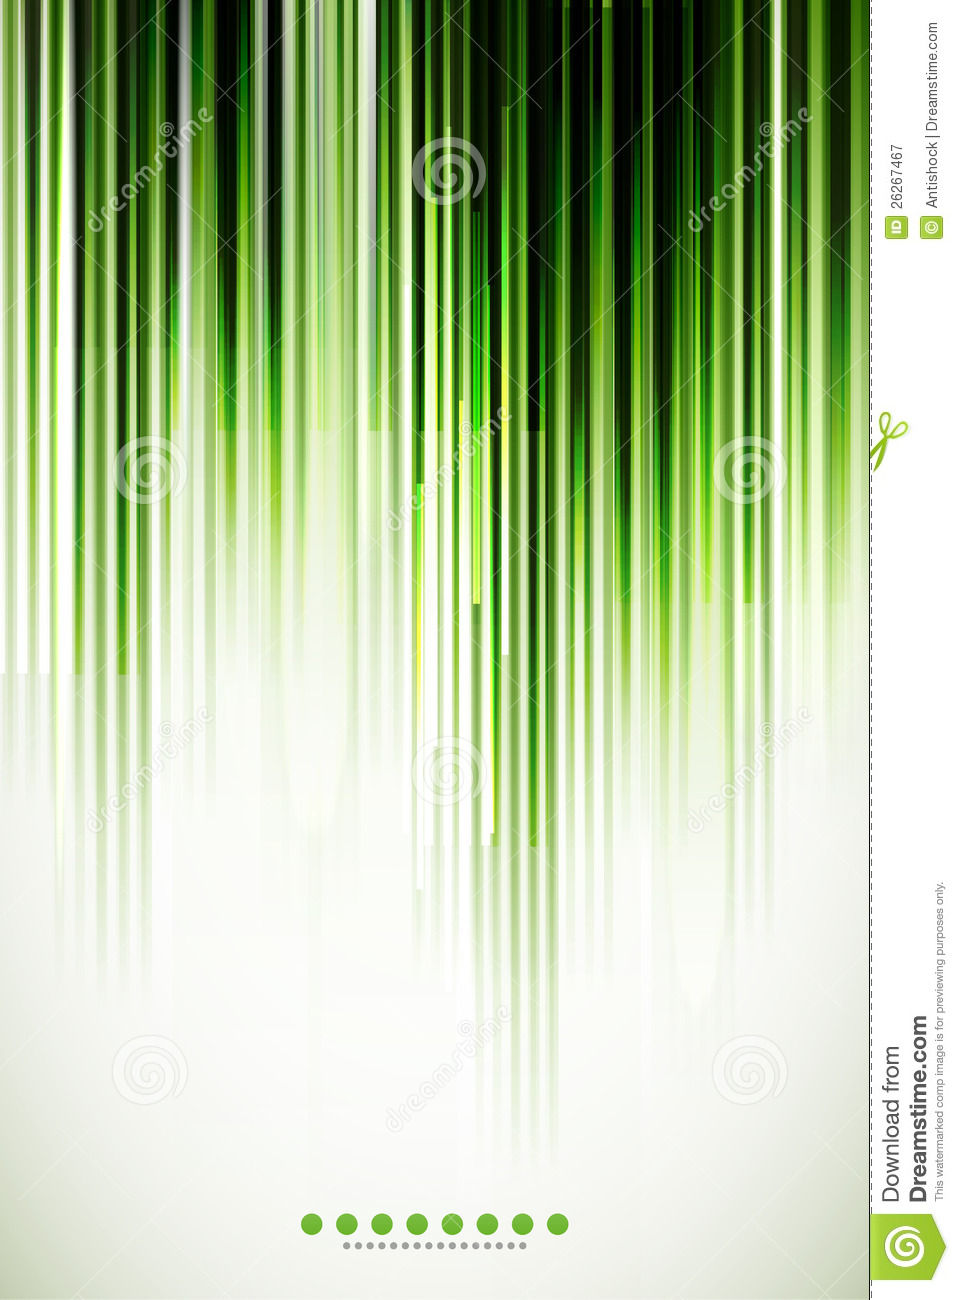 Straight Line Art Vector : Abstract straight lines background stock vector